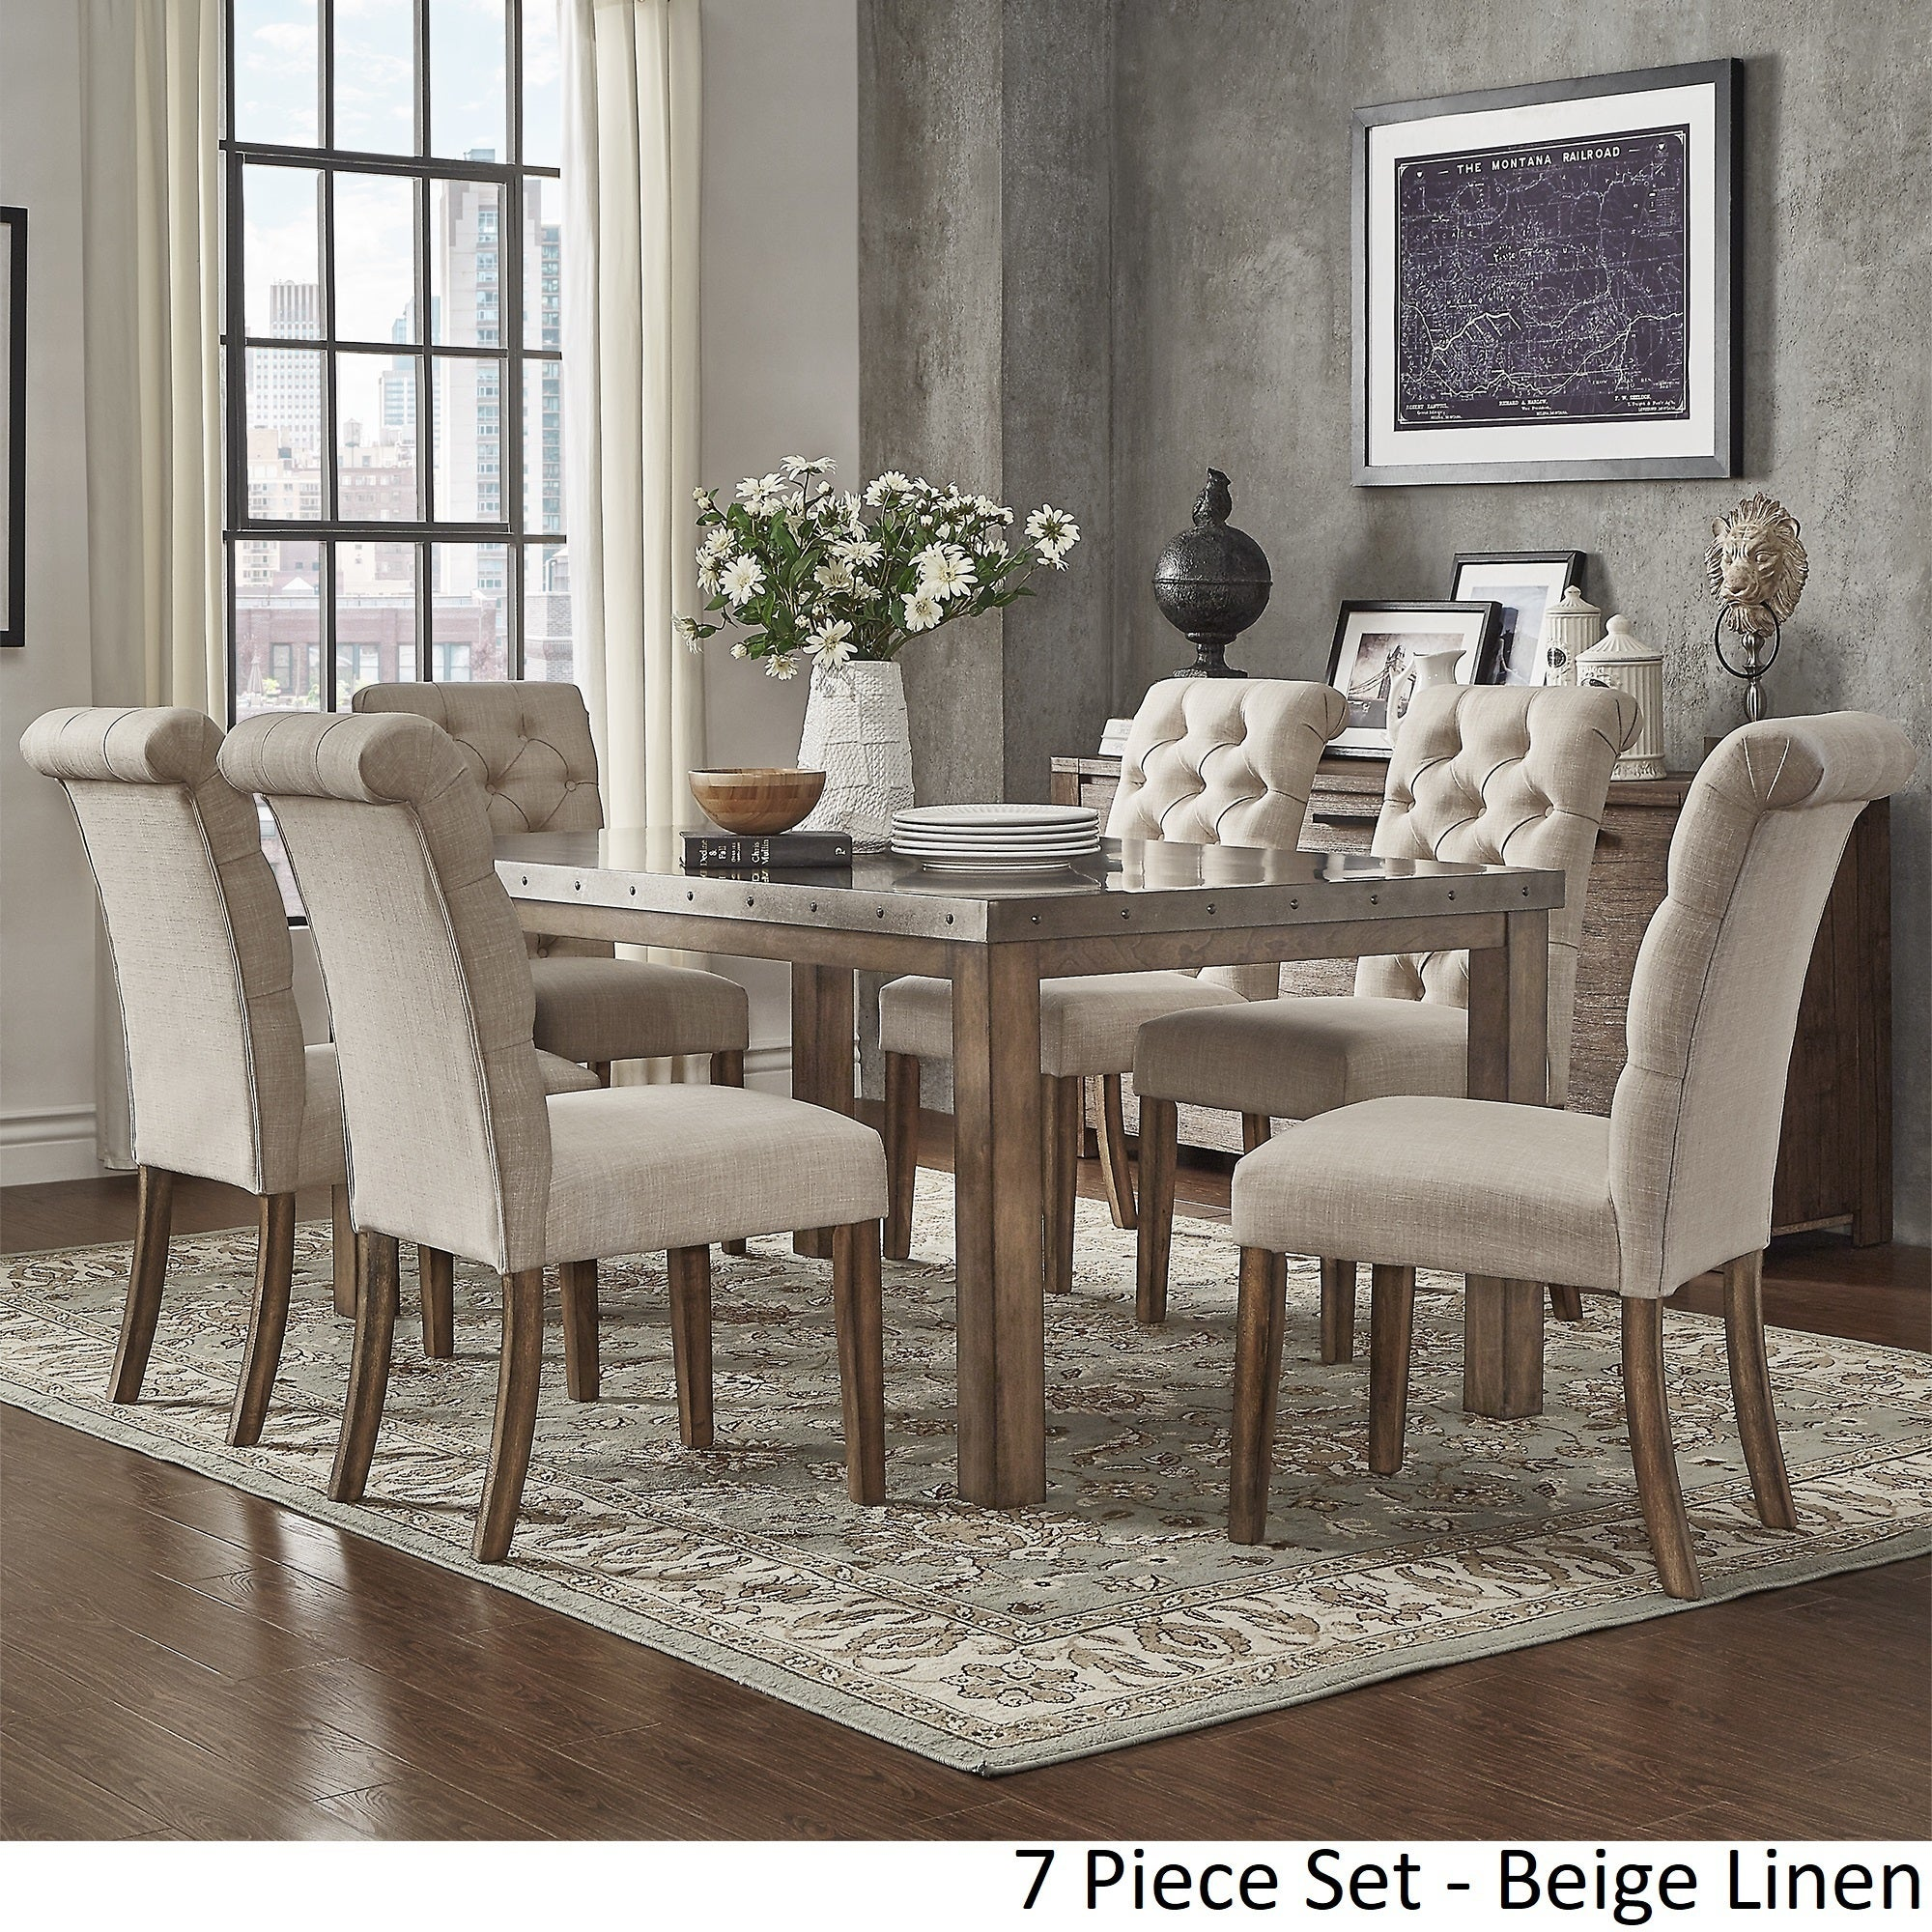 Cassidy Stainless Steel Top Rectangle Dining Table Set by iNSPIRE Q Artisan  - Free Shipping Today - Overstock.com - 23494333